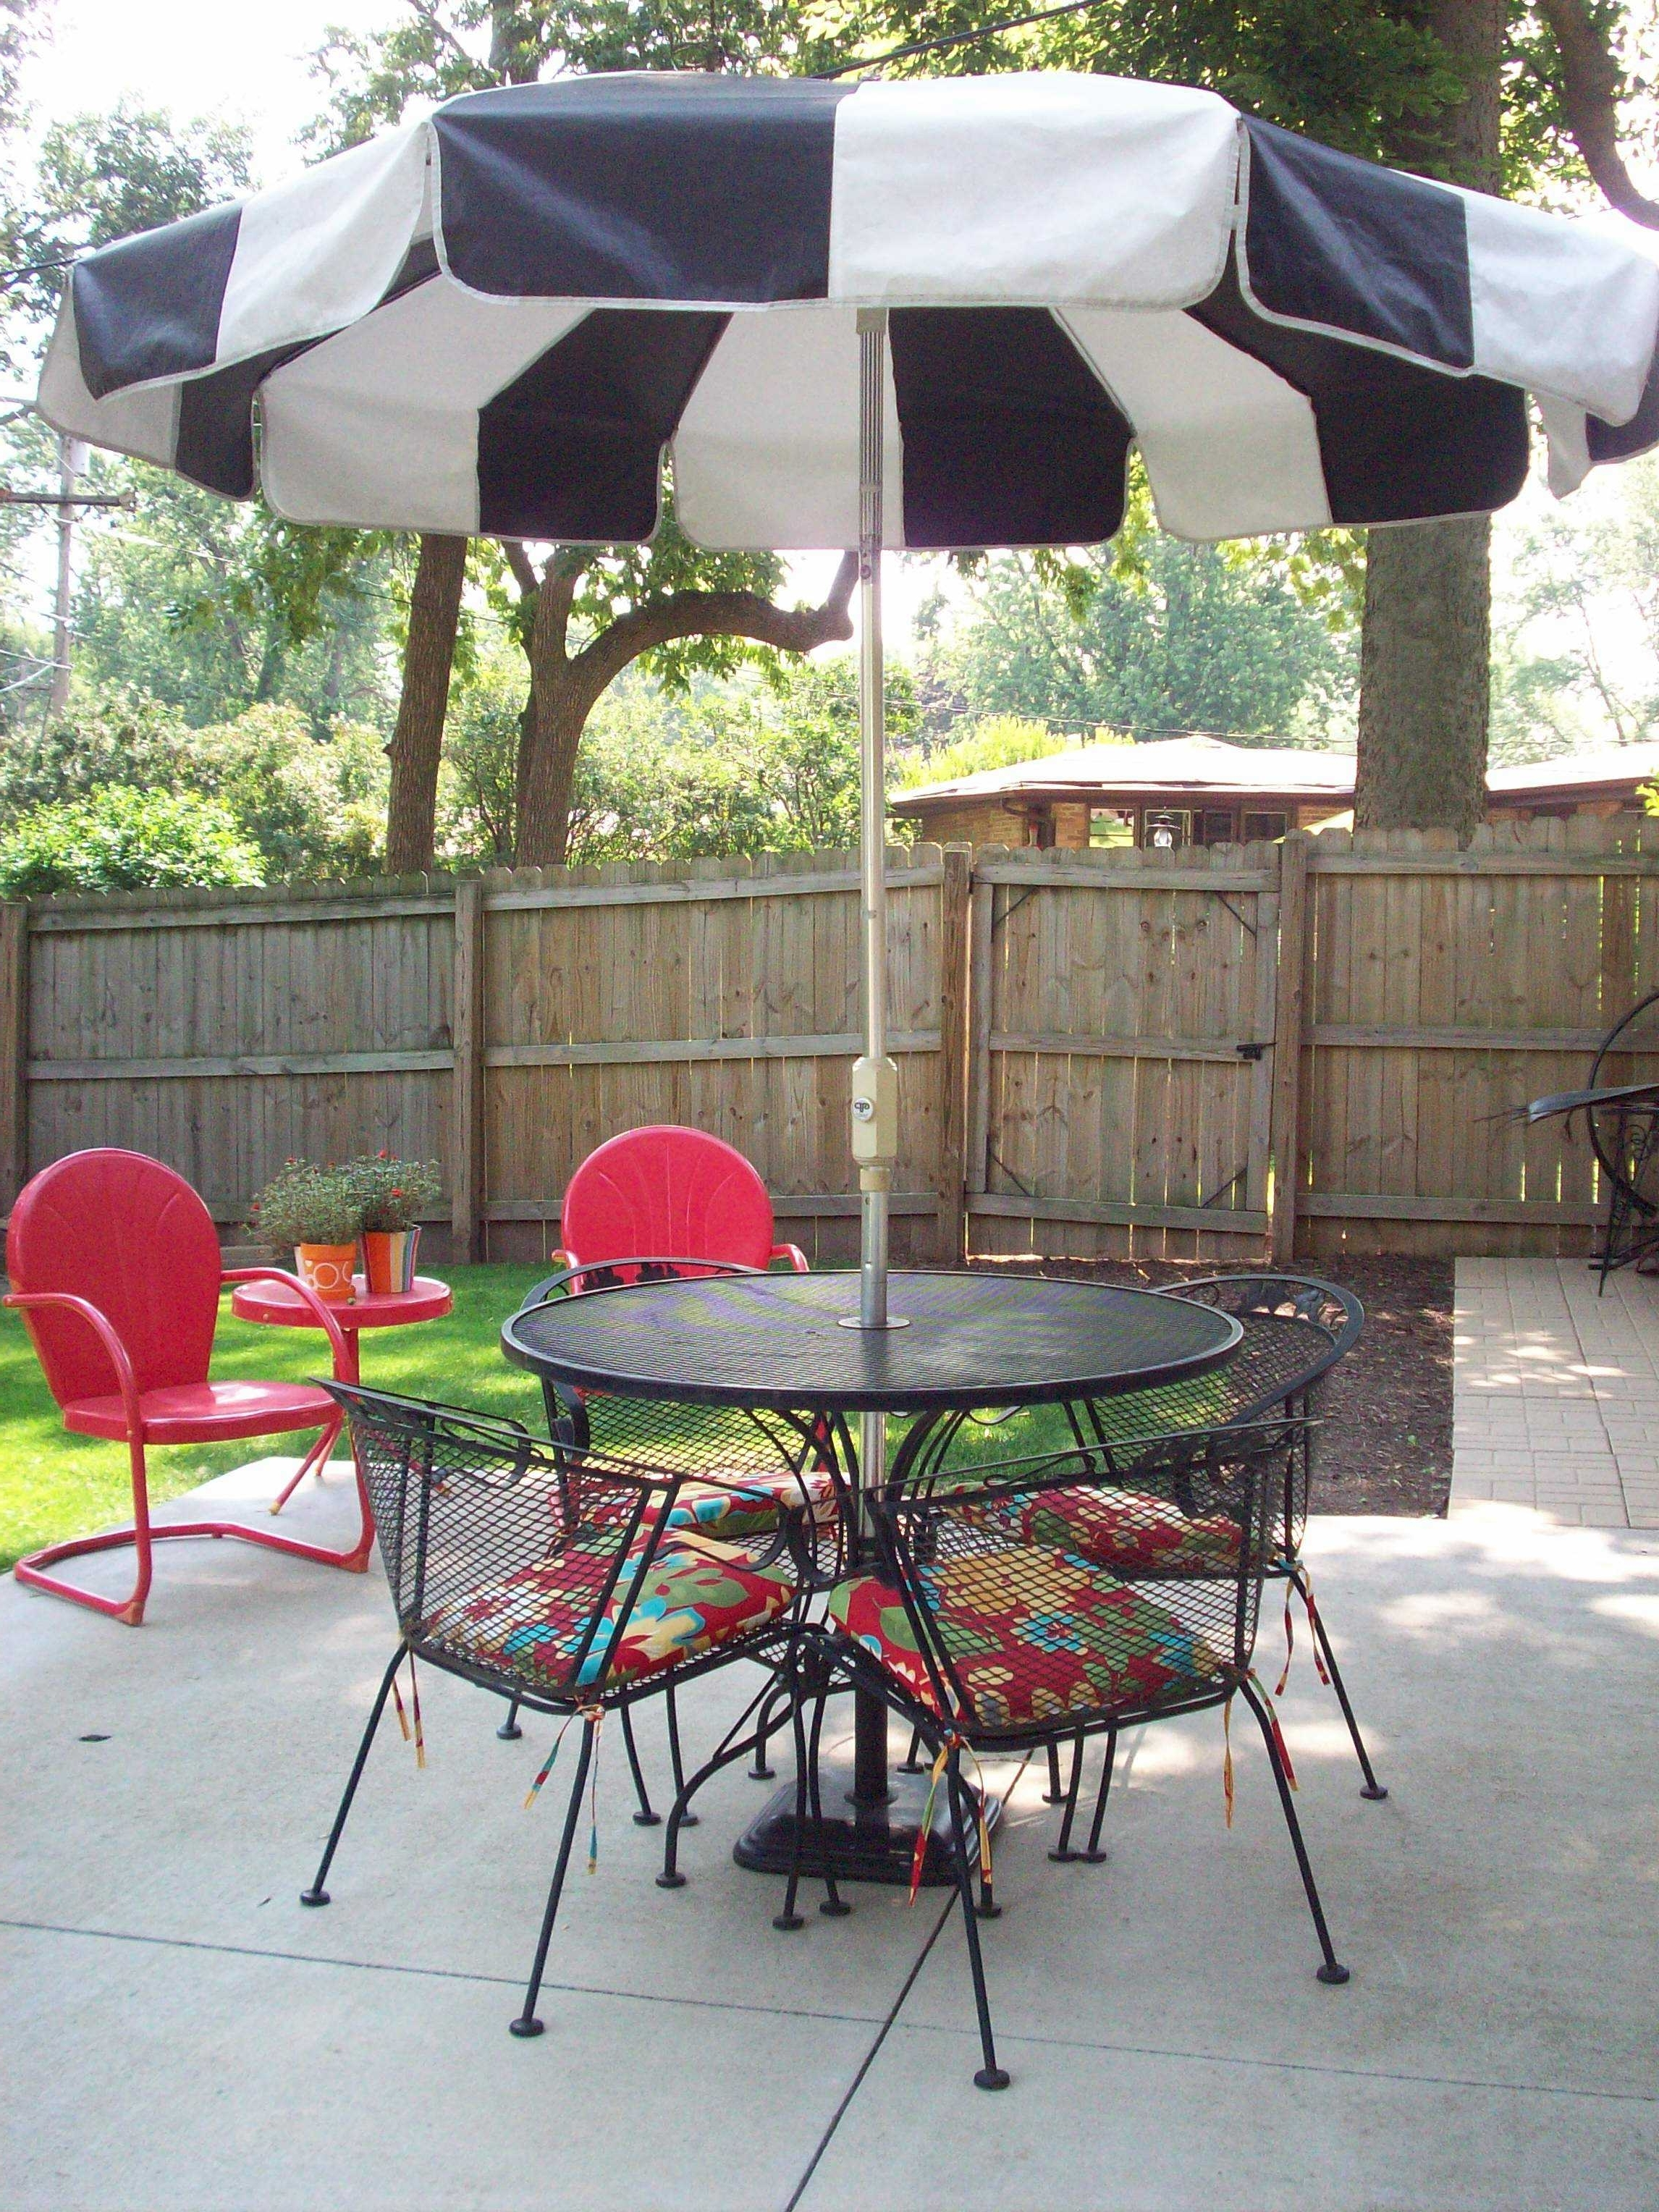 Charming Small Patio Table With Umbrella Ideas Also Set Tables That Intended For Latest Small Patio Tables With Umbrellas (View 4 of 20)